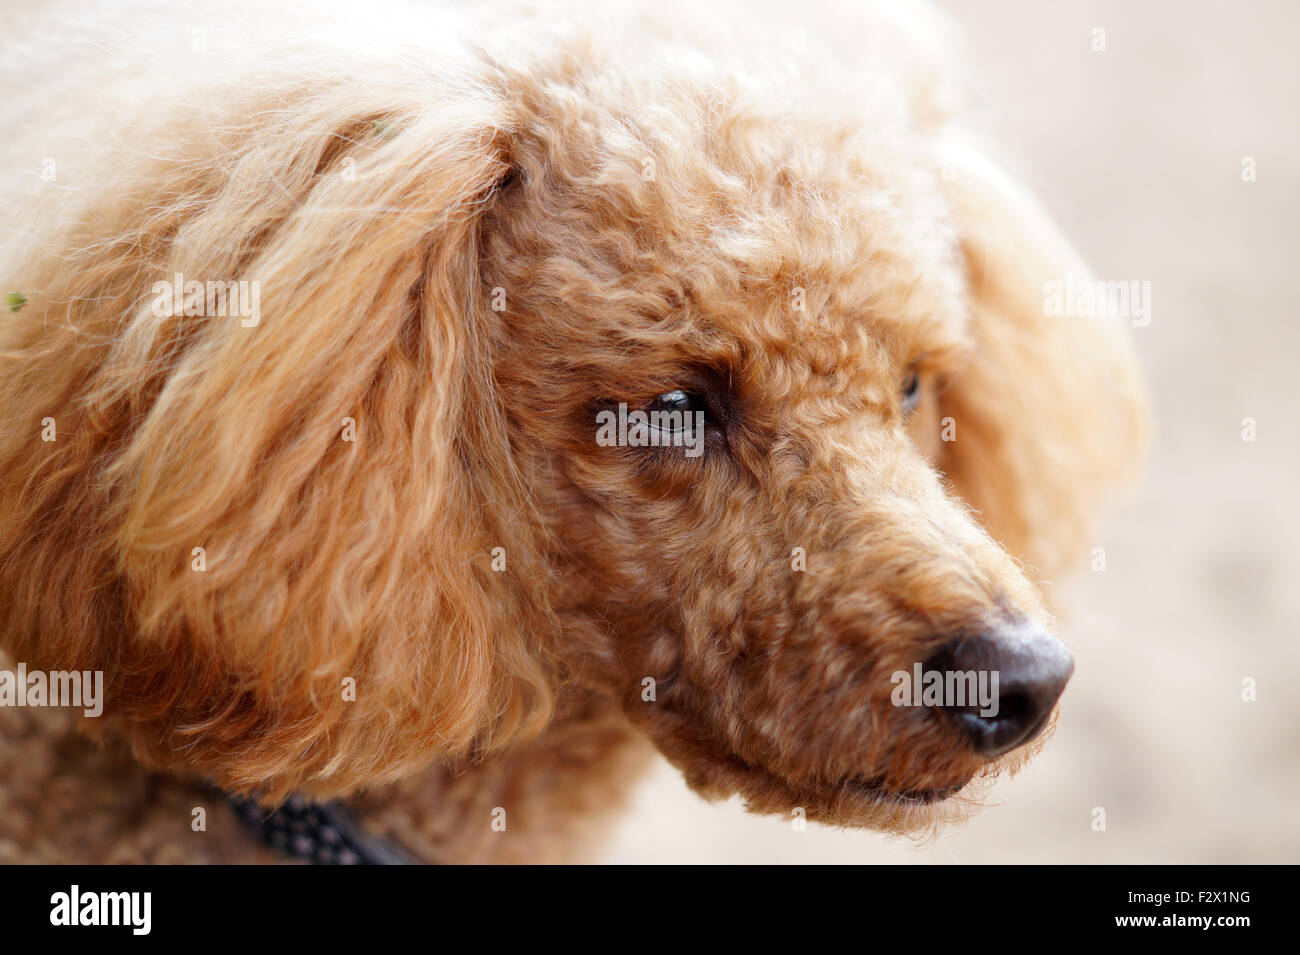 Red Fluffy Cuddly Curly haired toy Poodle with brown eyes - Stock Image